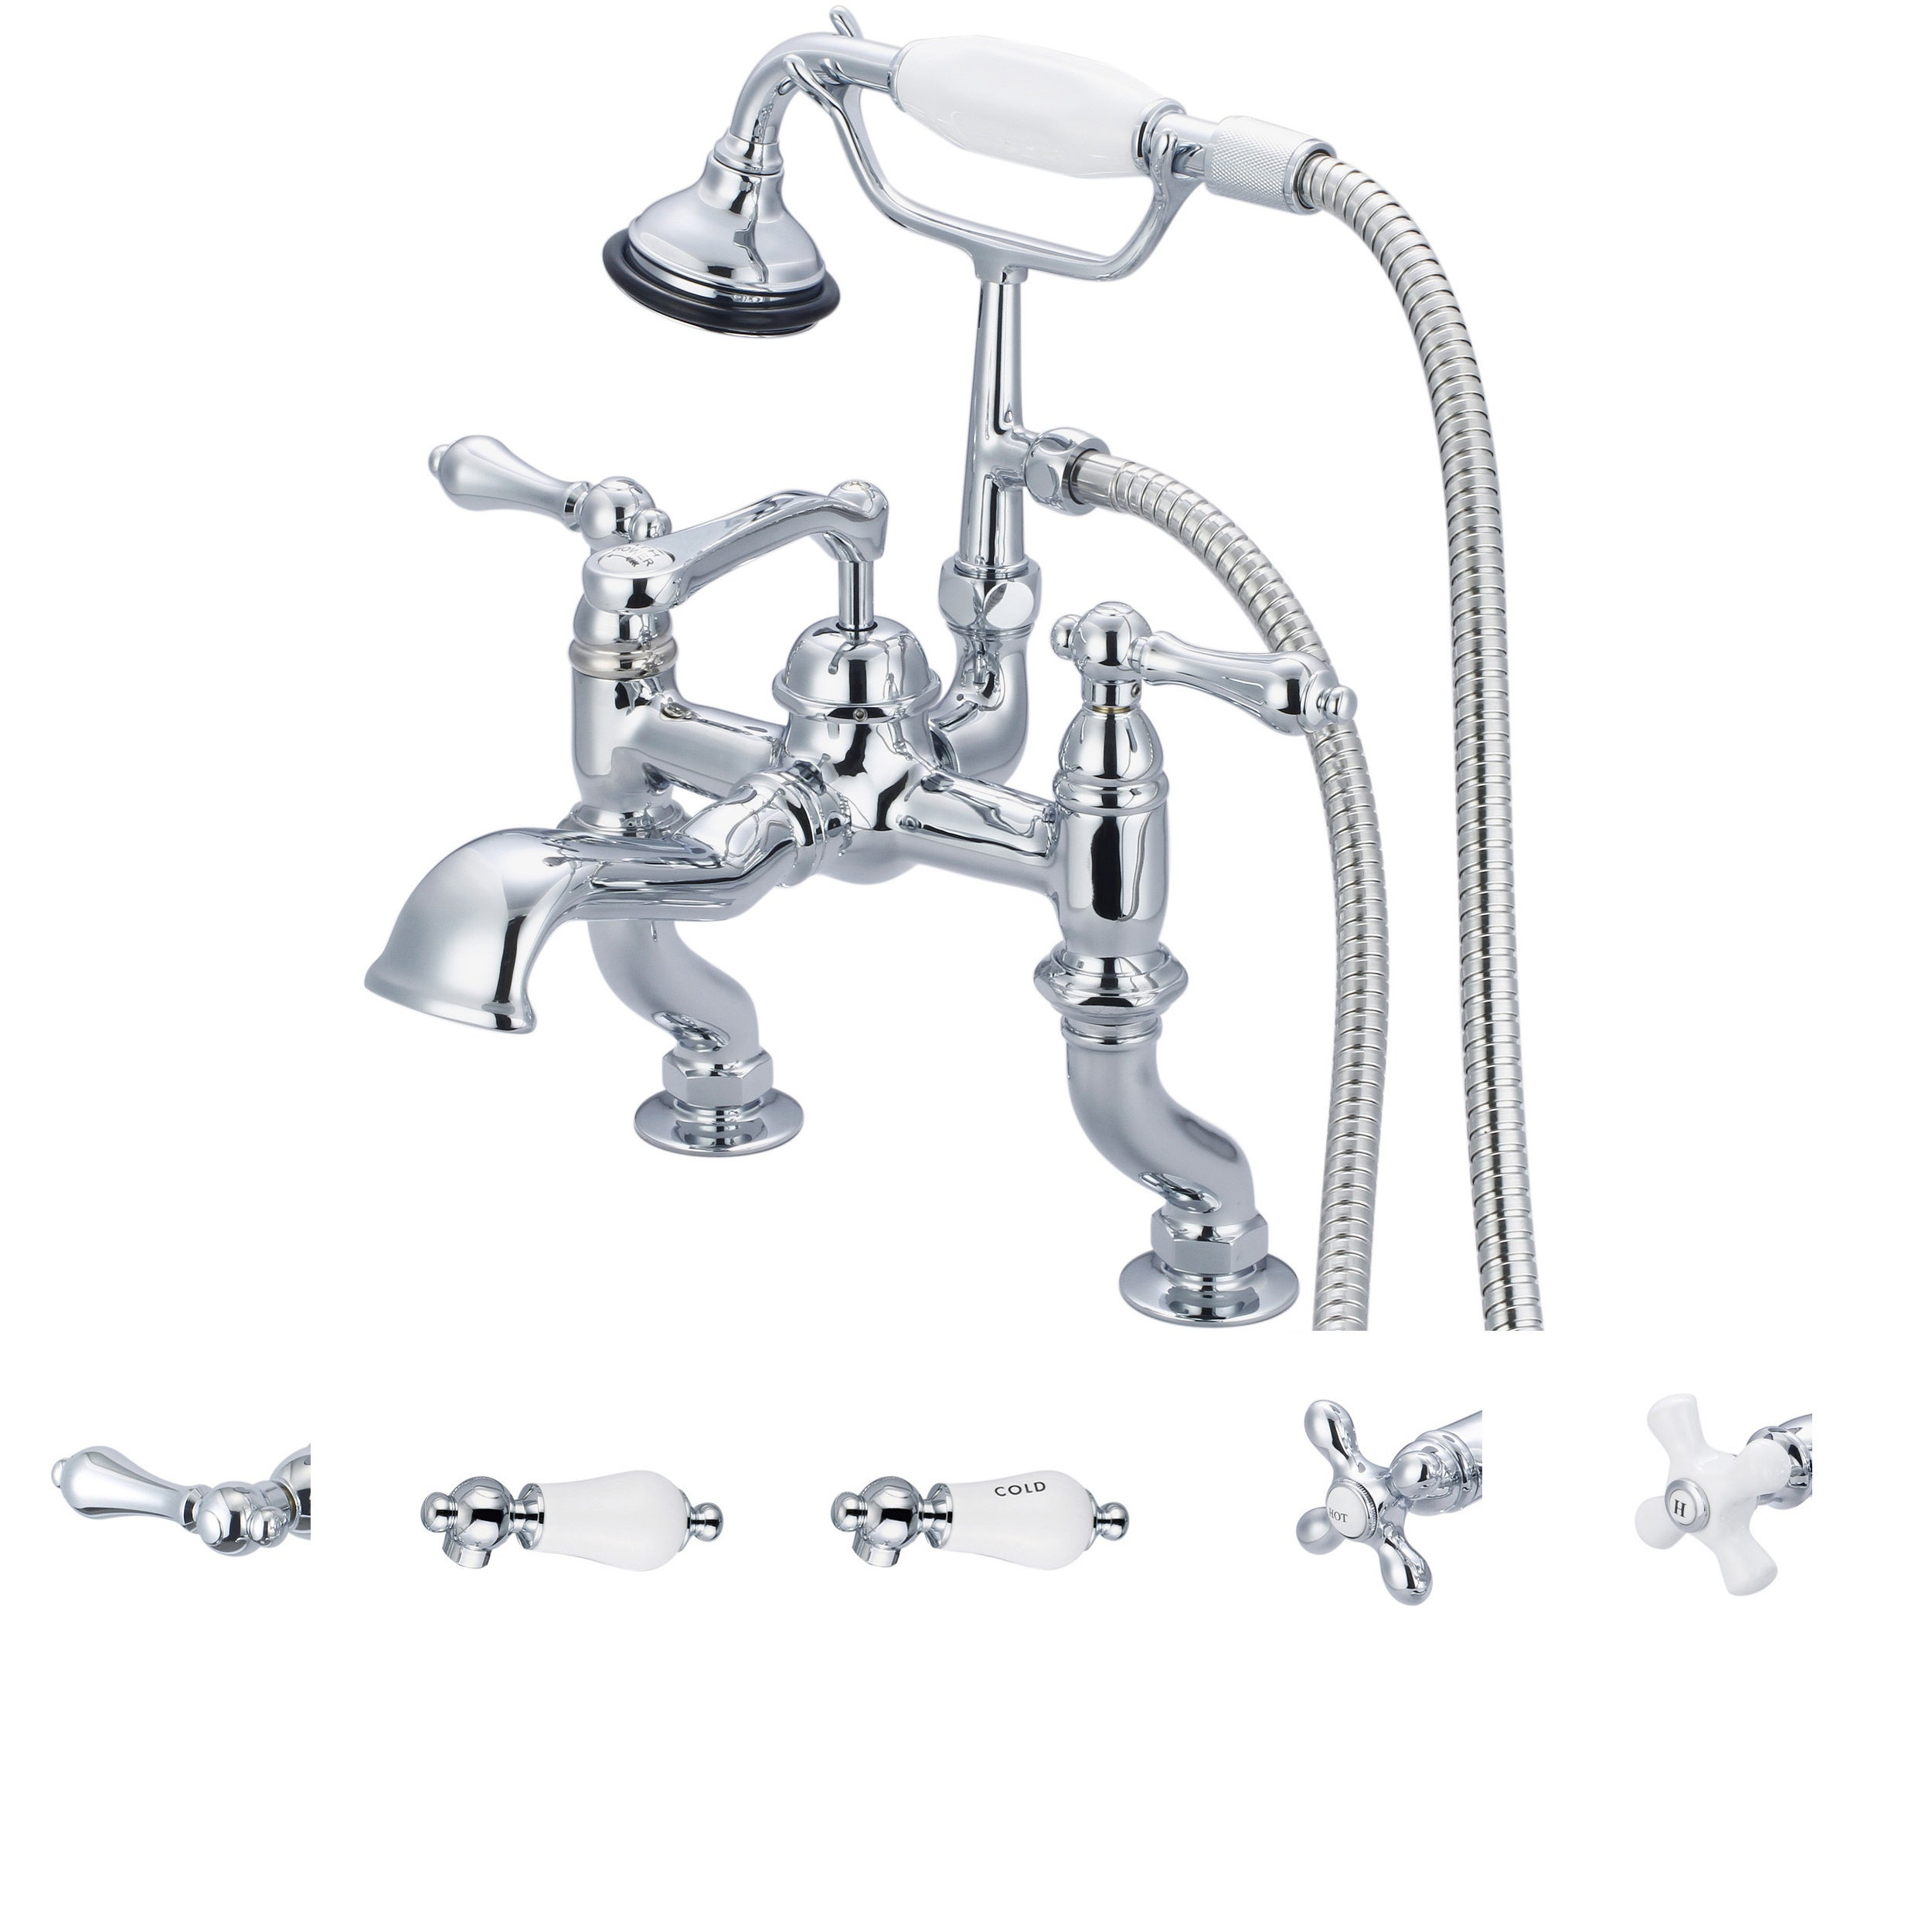 Water Creation Vintage Classic Adjustable Center Deck Mount Tub Faucet With  Handheld Shower In Chrome Finish   Free Shipping Today   Overstock    14853766